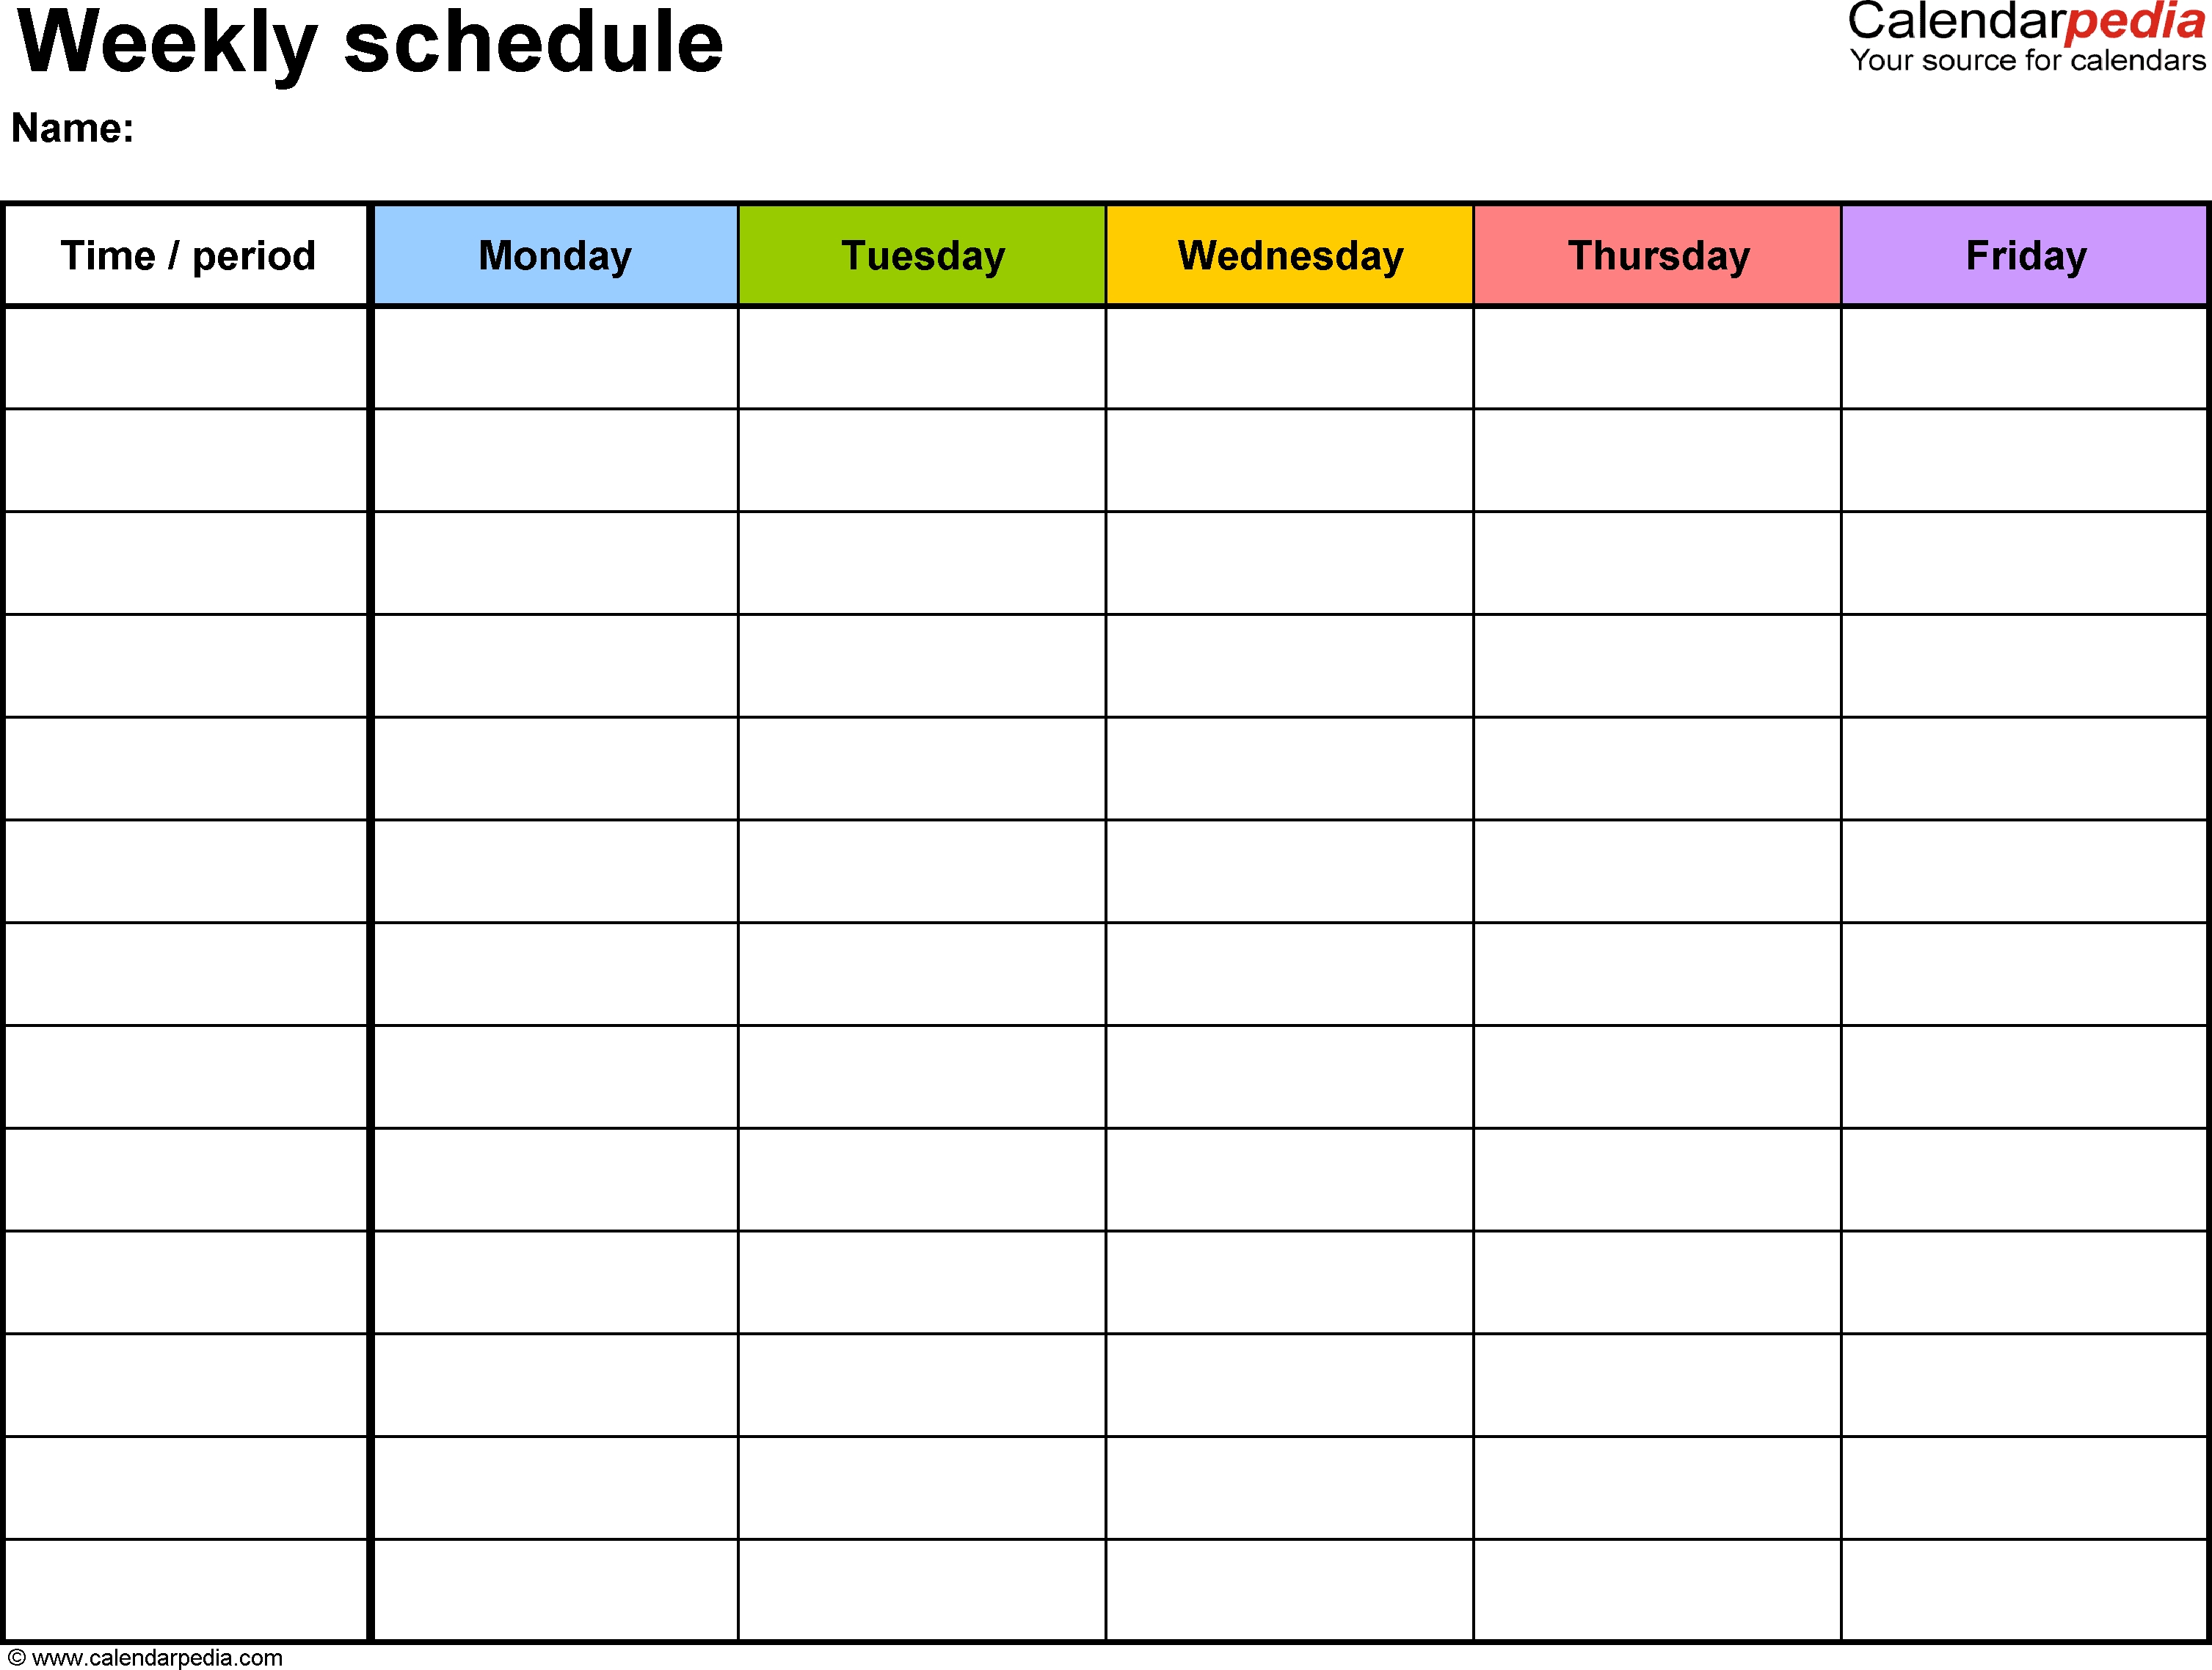 Free Weekly Schedule Templates For Word - 18 Templates in Weekly Blank Calendar Monday Through Friday